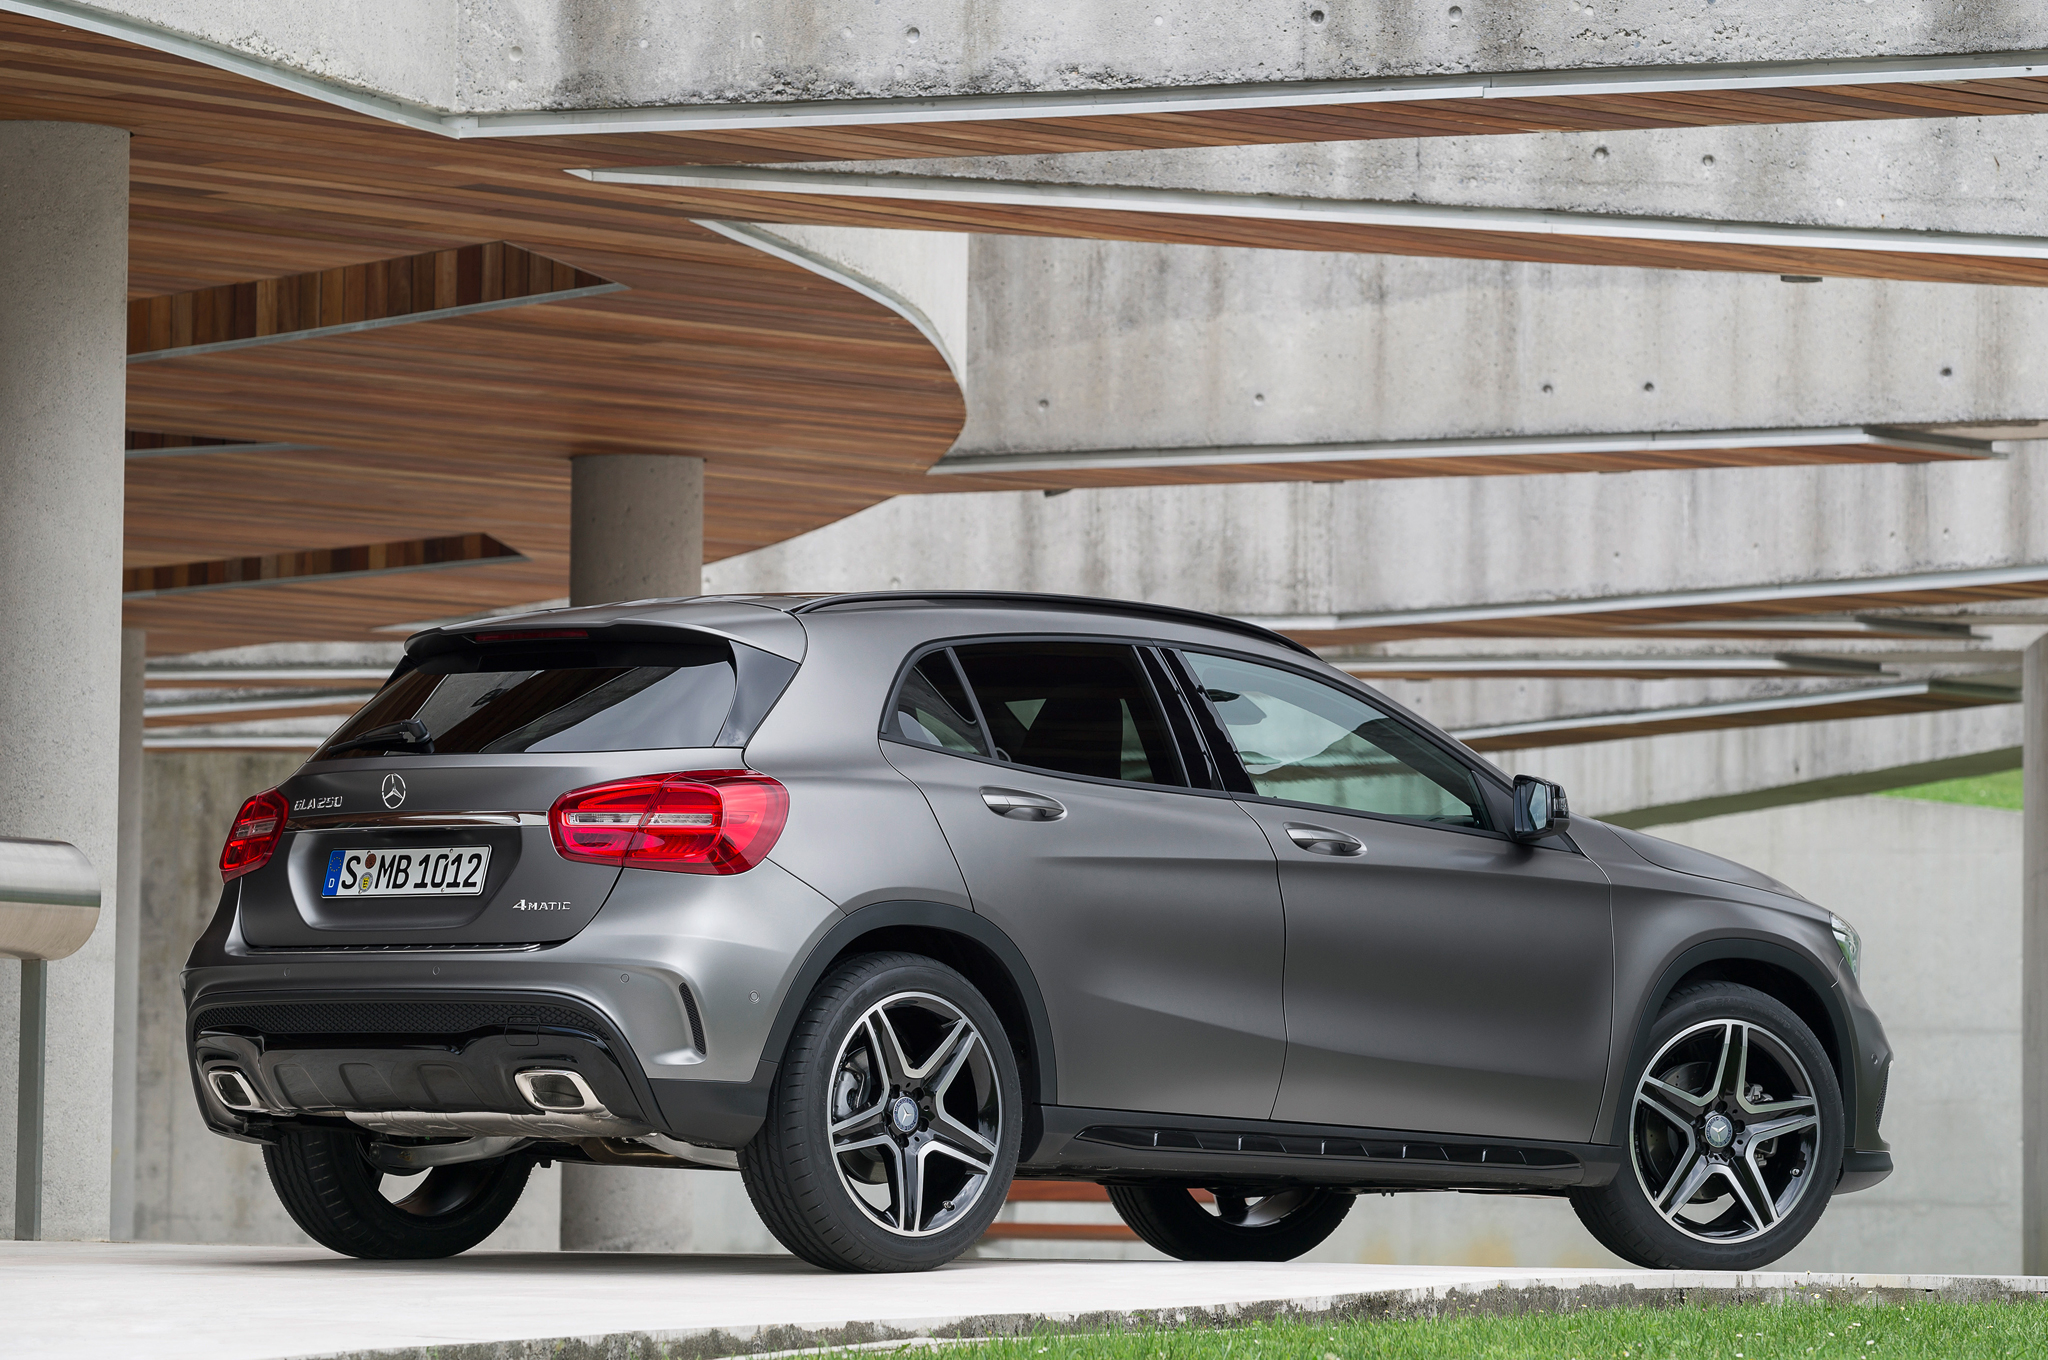 2015 mercedes-benz gla-class - information and photos - zombiedrive